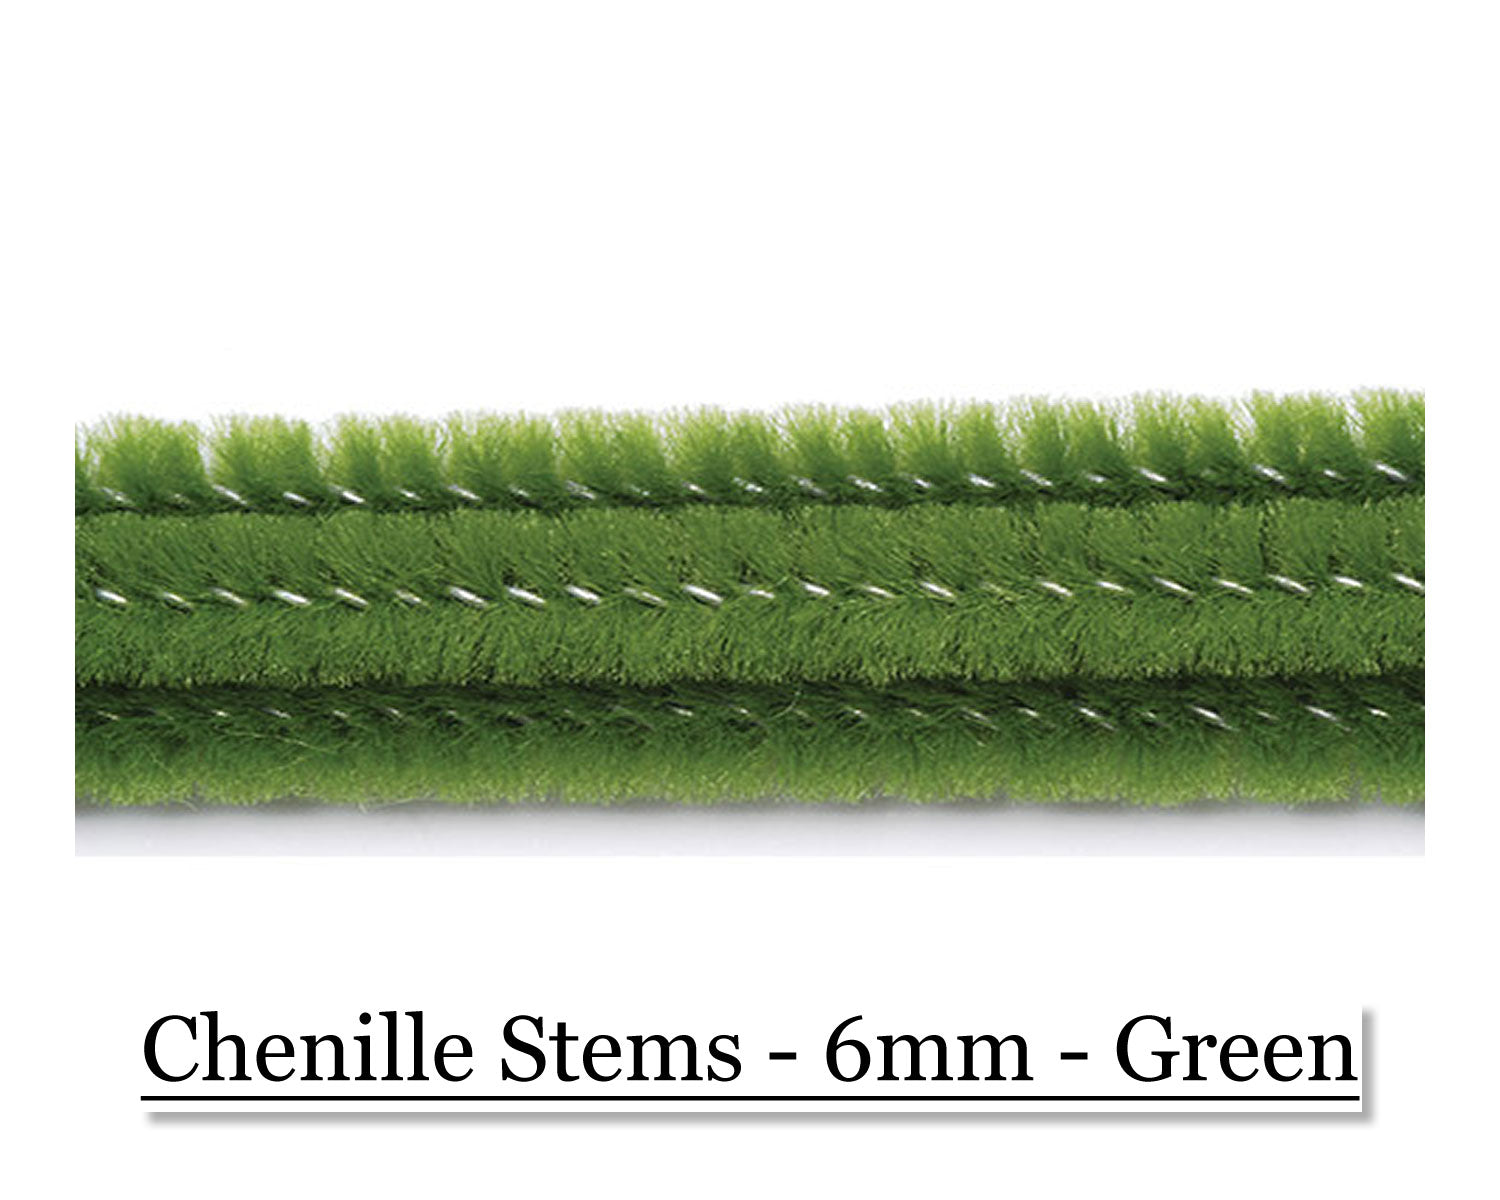 Chenille Stems - 6mm - Green